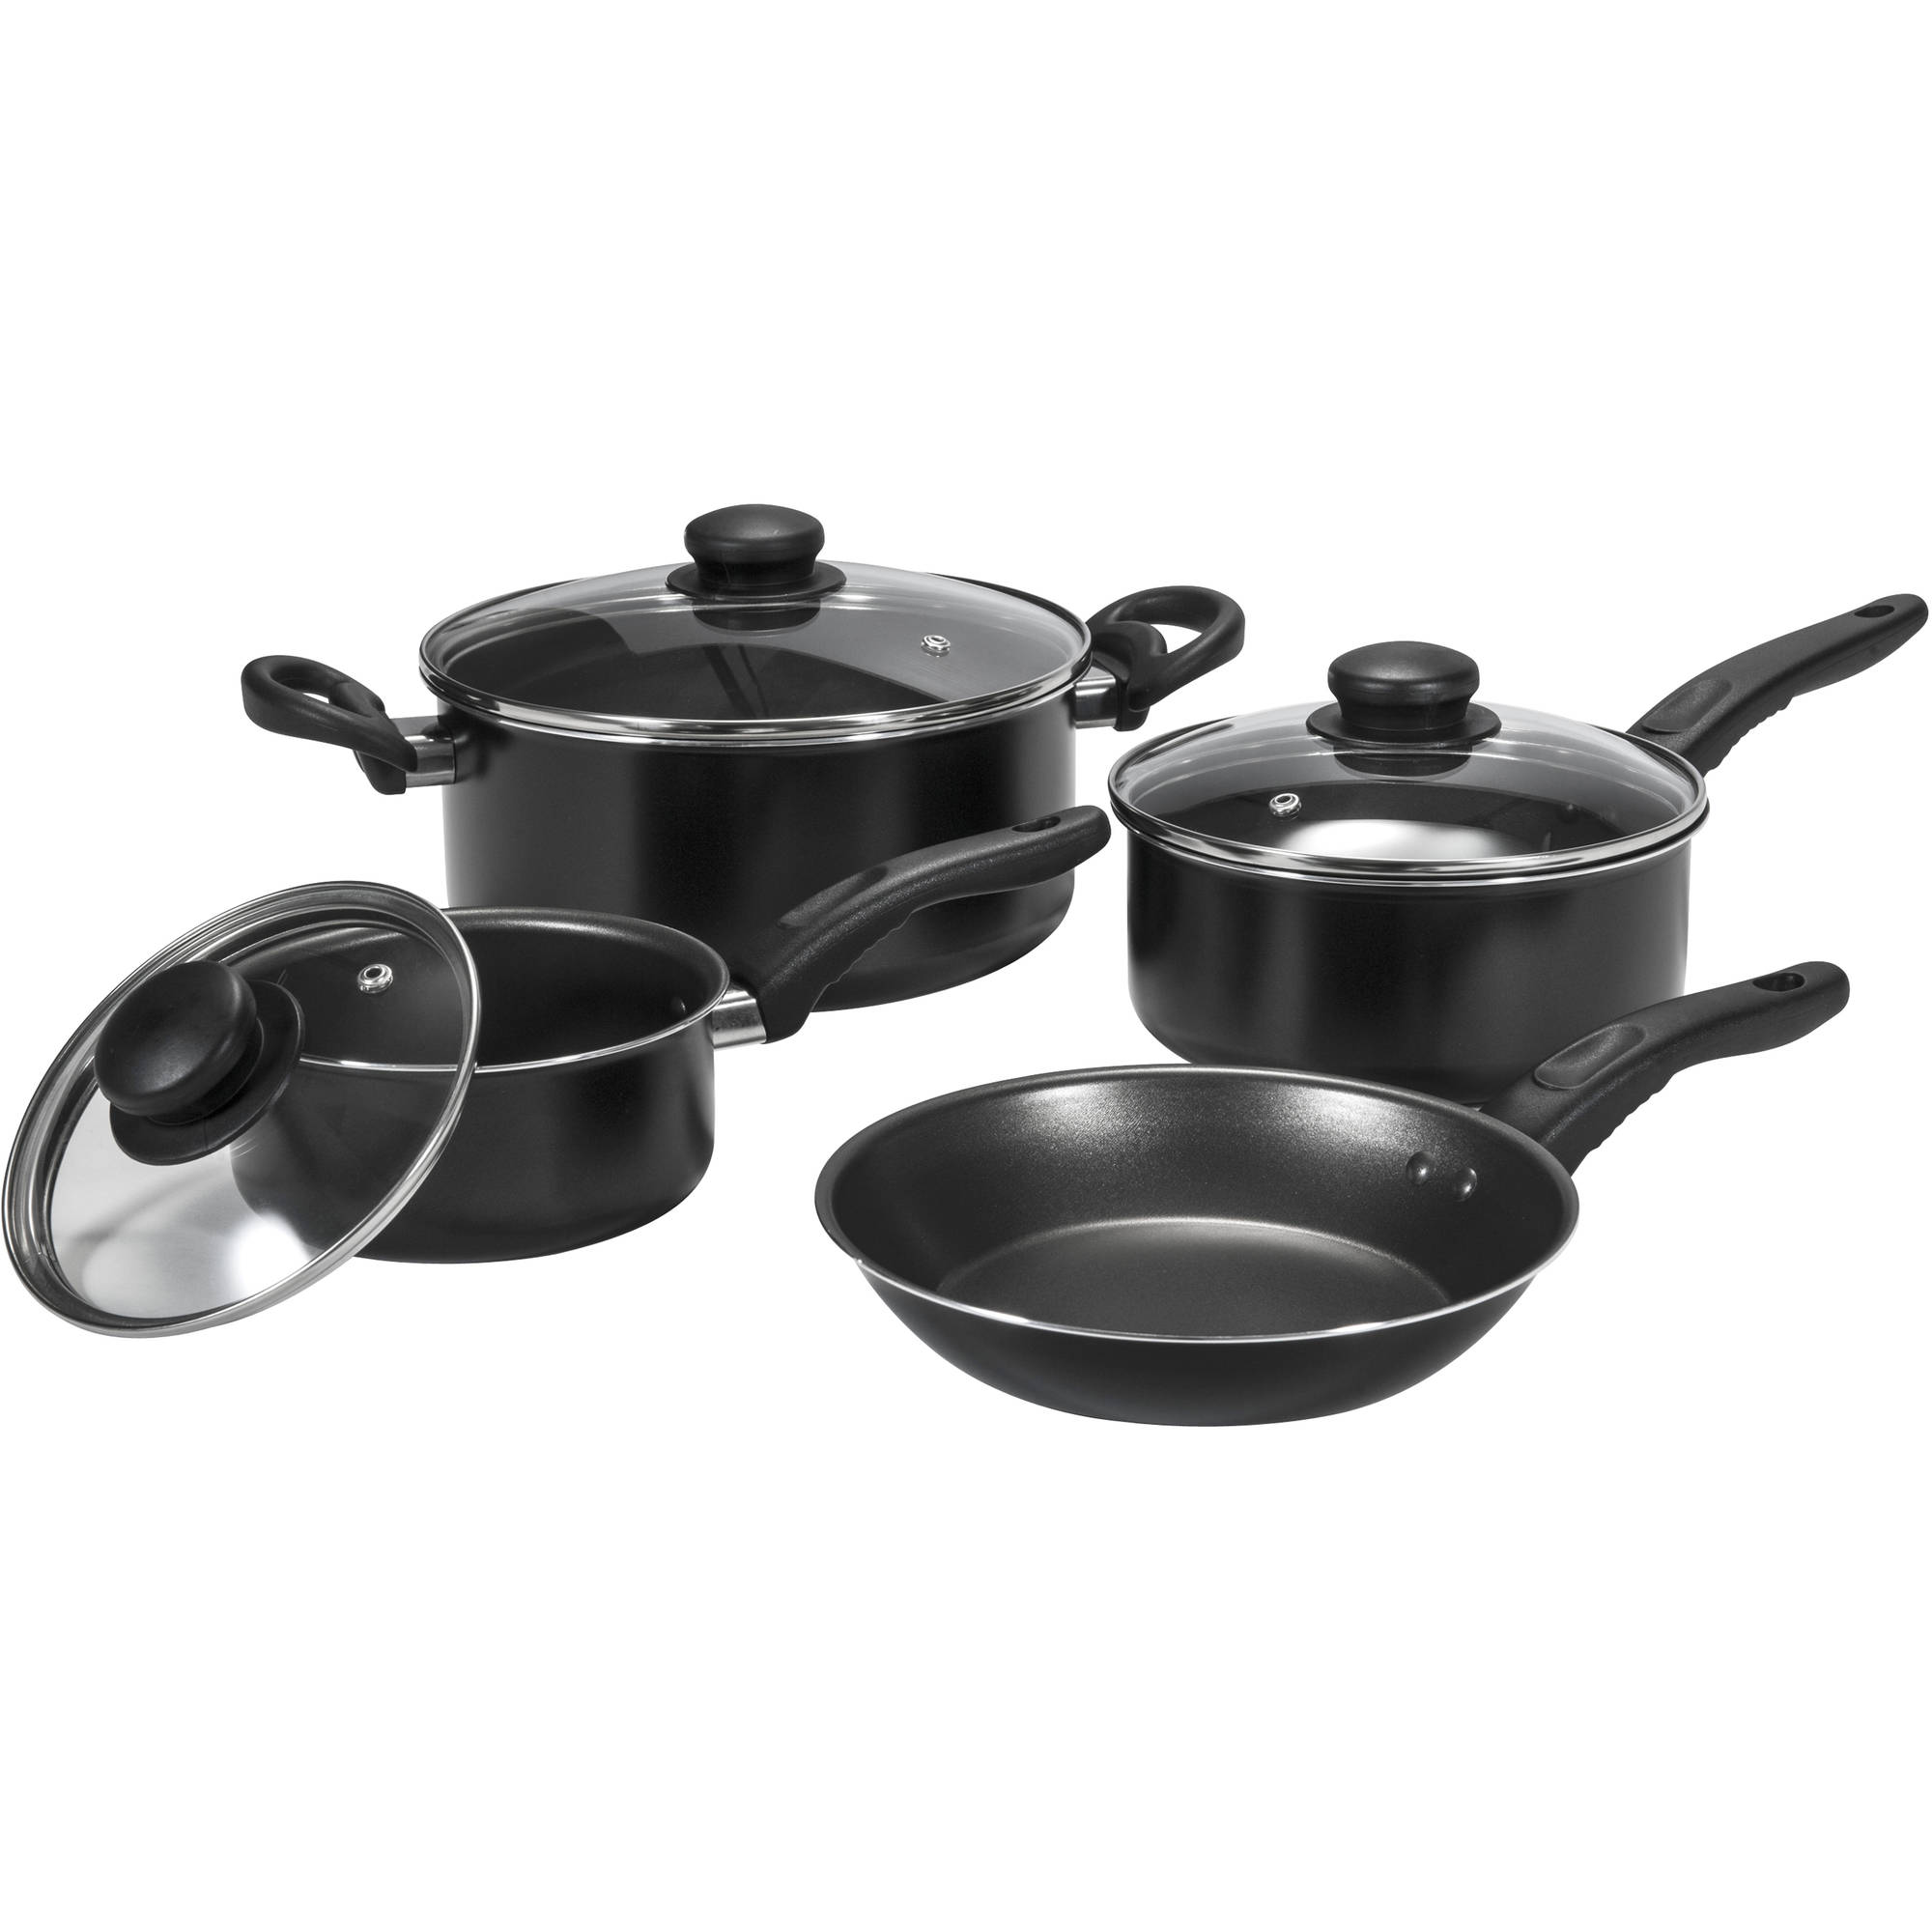 Mainstays Basic Cookware Set, 7-Piece